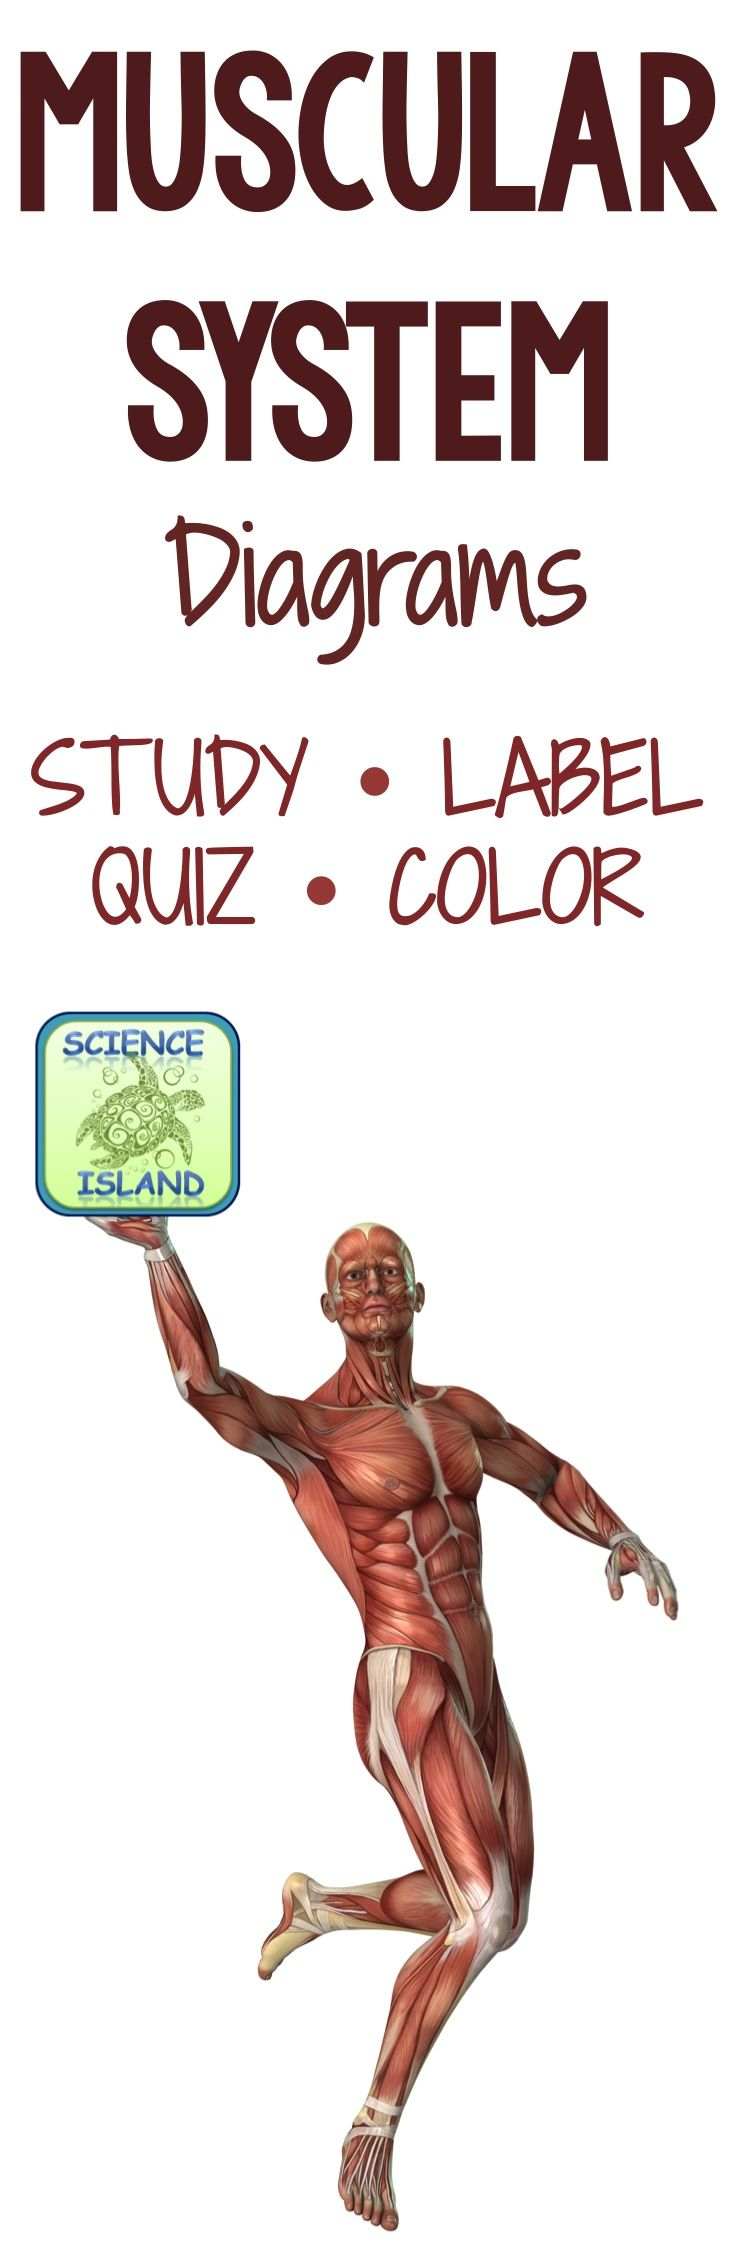 Muscular System Diagrams: Study, Label, Quiz & Color | Muscular ...